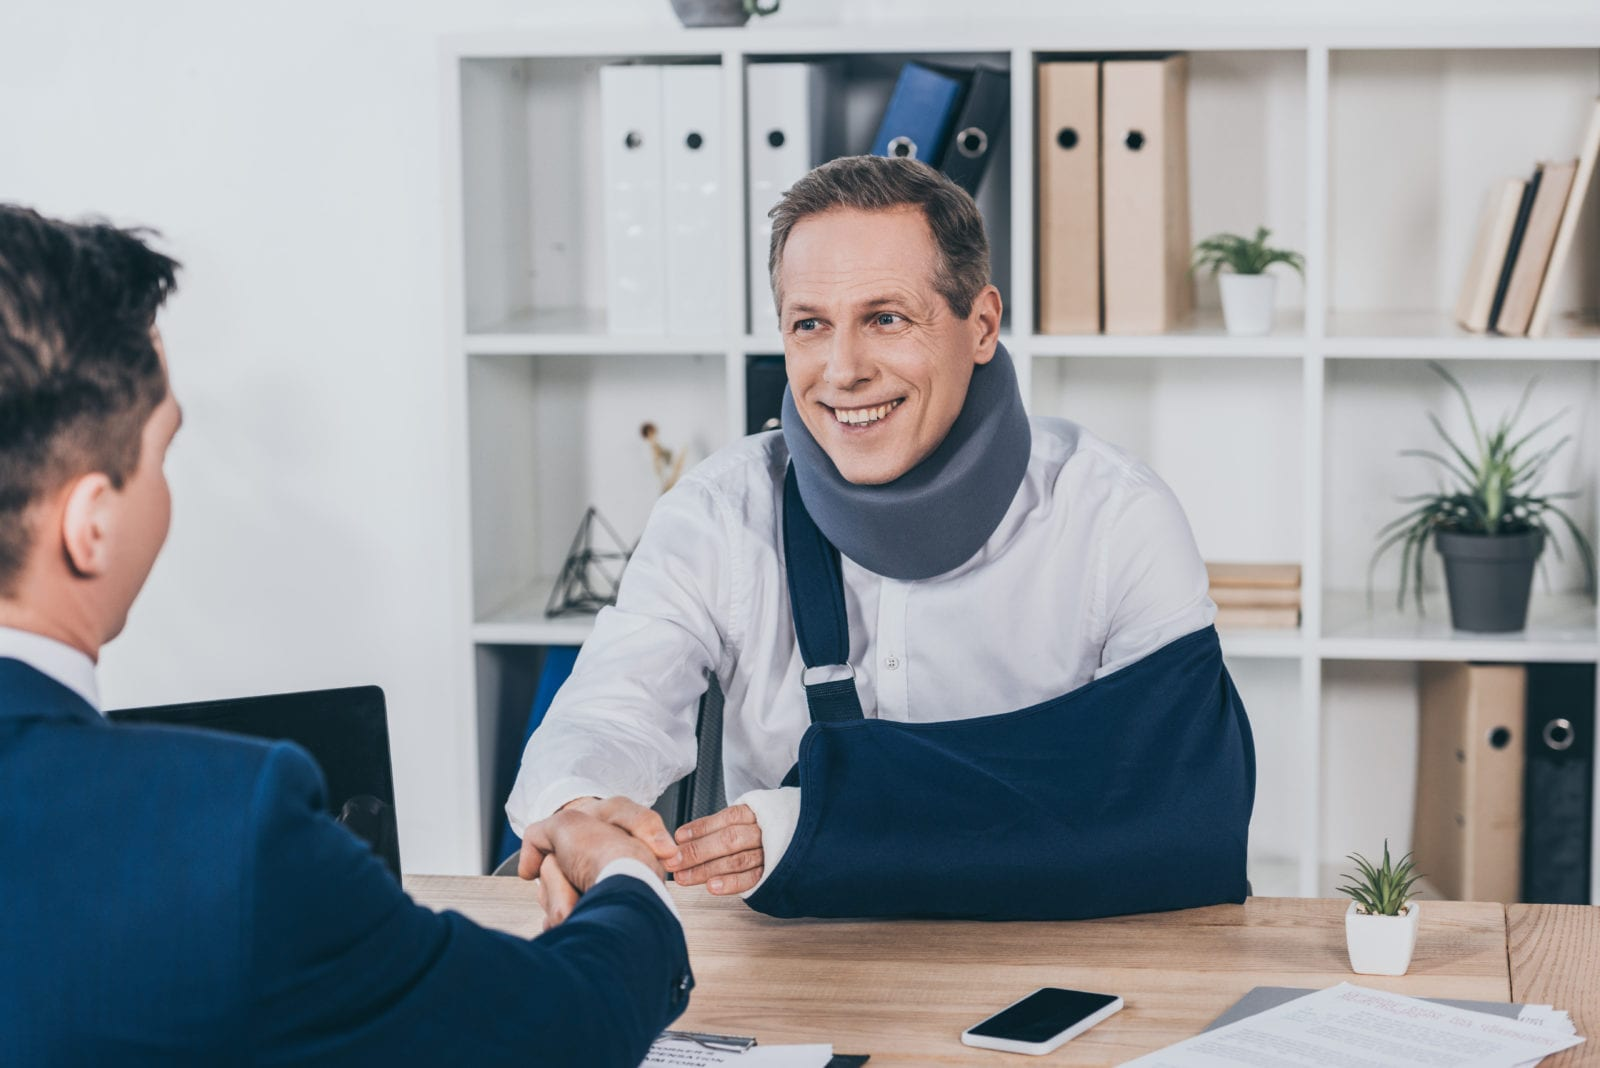 worker in neck brace with brokenarm and businessman in blue jacket shaking hands over table in office, compensation concept